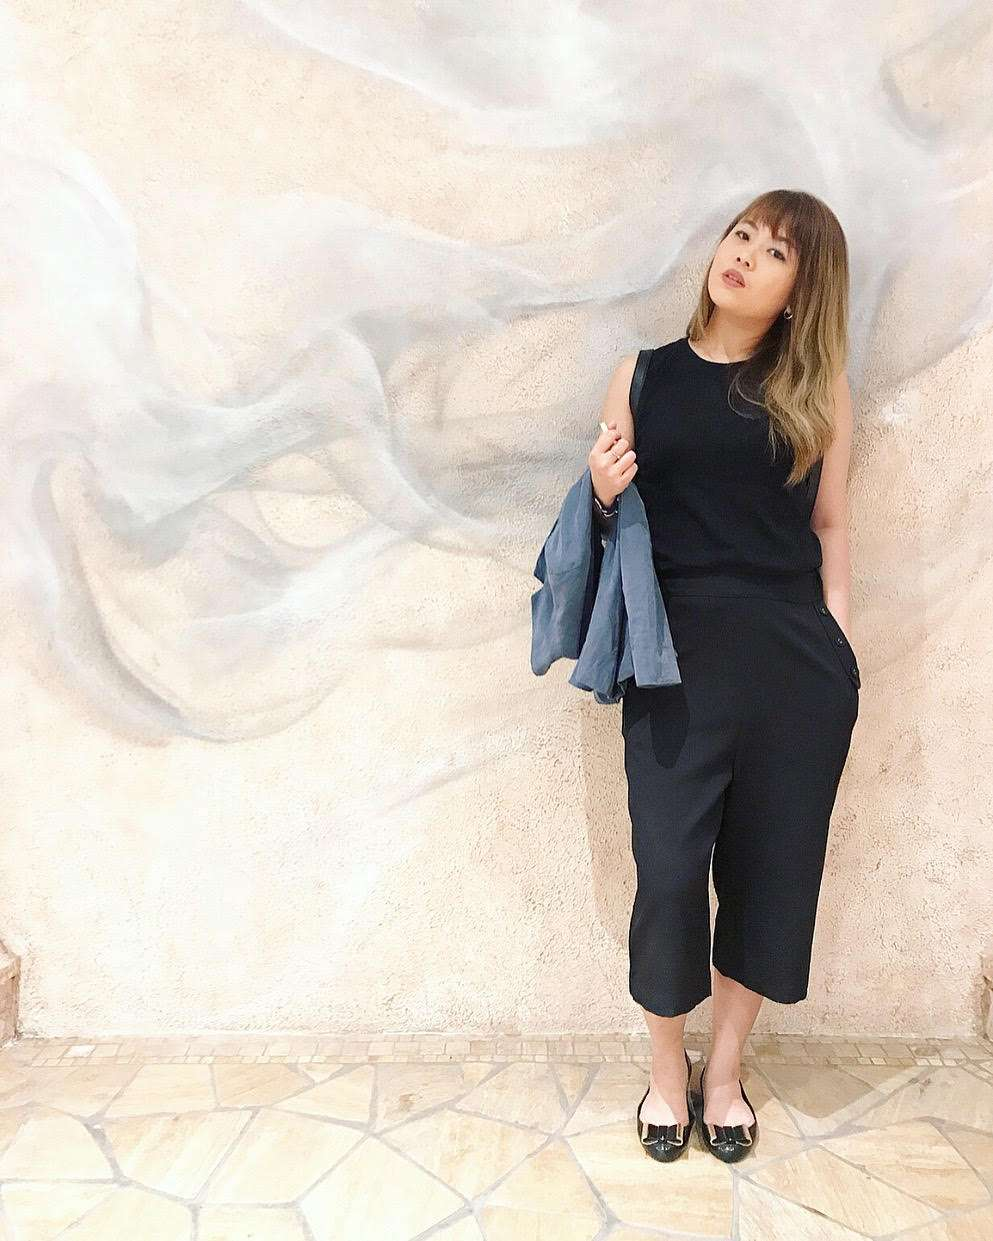 A girl in Macau poses against a wall wearing a black top and slacks.